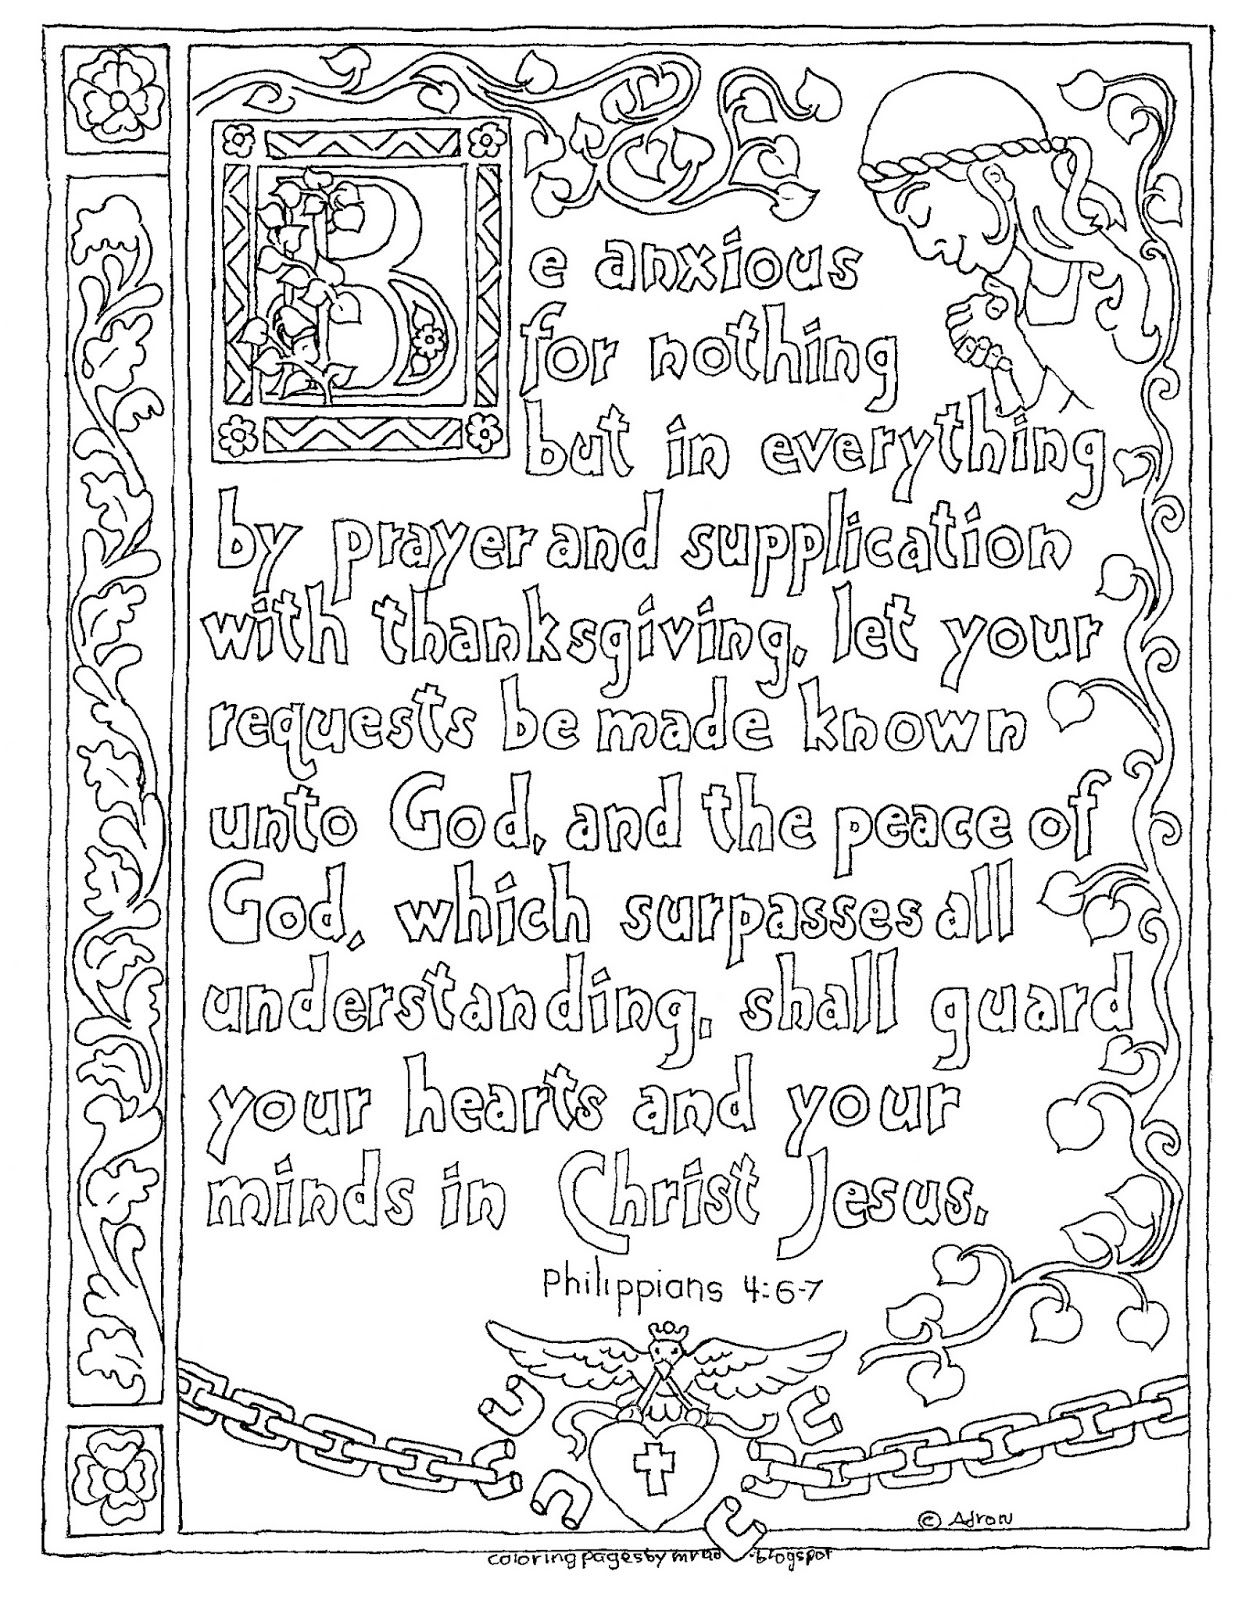 Coloring Pages For Kids By Mr Adron Printable Philippians 4 6 7 Illuminated Text Style